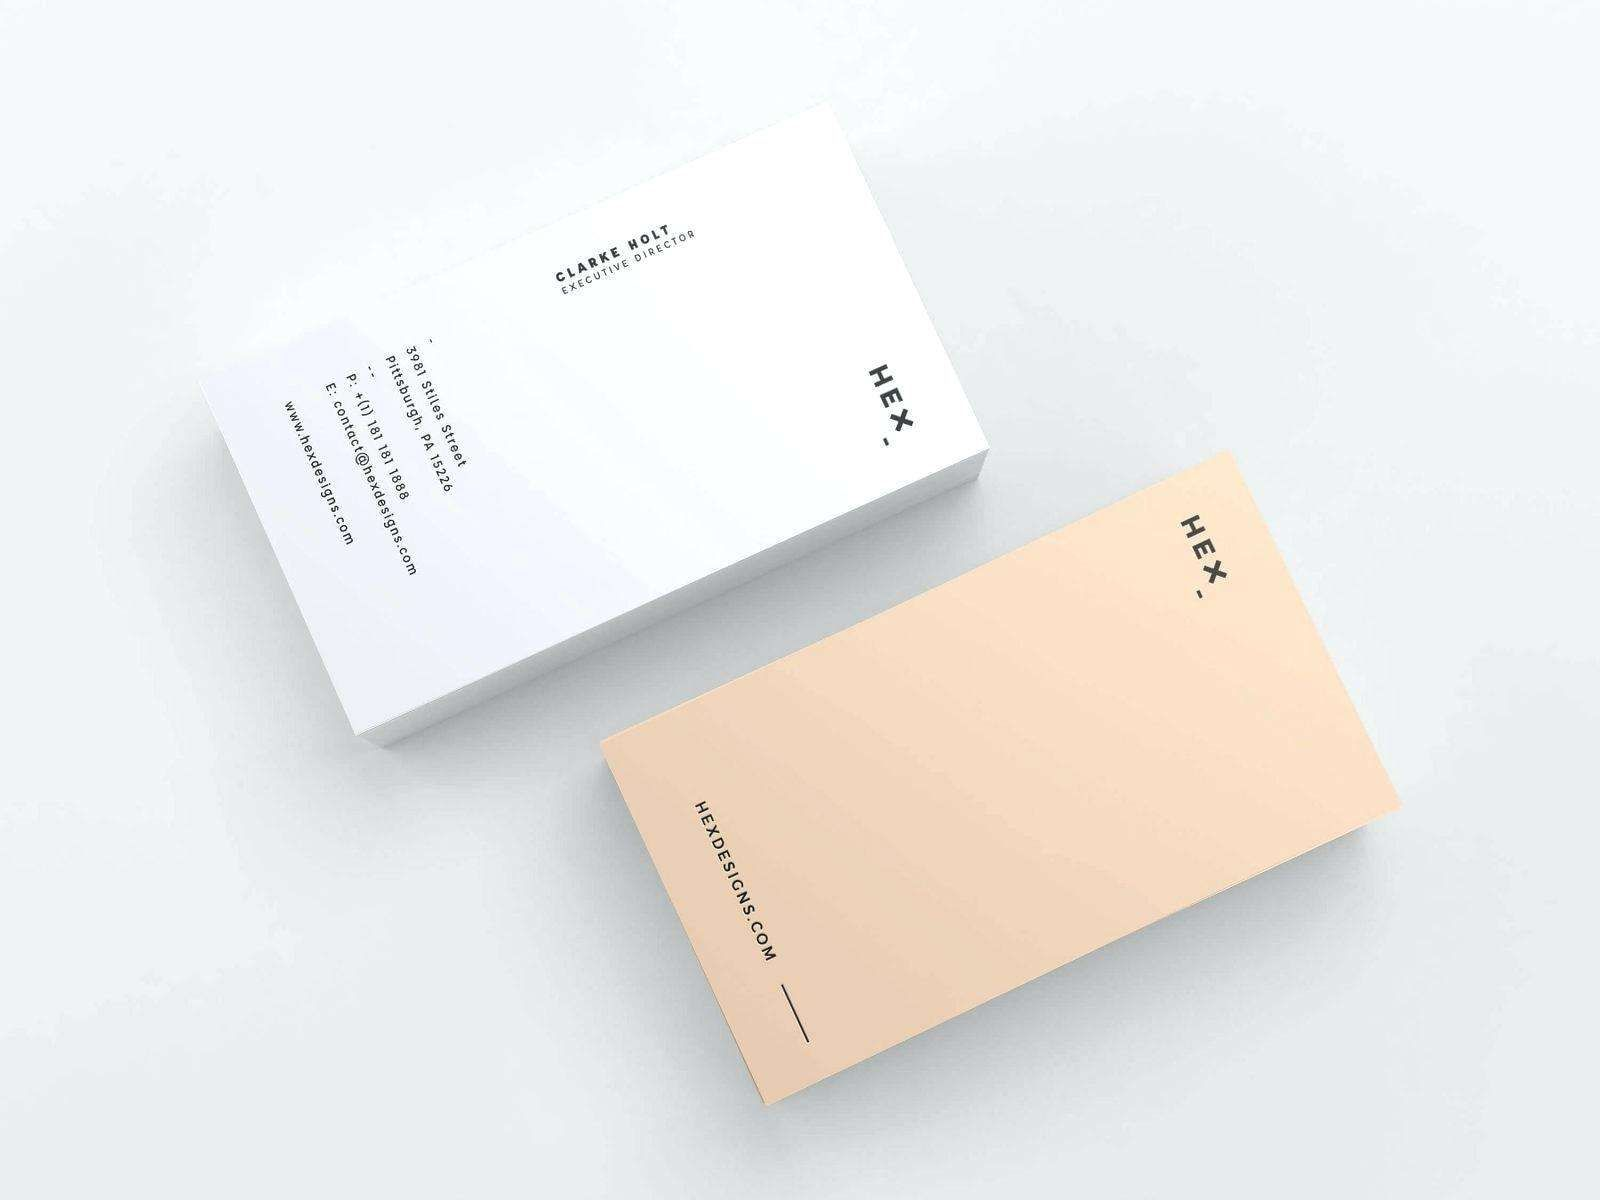 20 Avery Business Card Template For Mac Template Avery Business Card Template 837 Business Card Mock Up Business Card Template Psd Free Business Card Templates